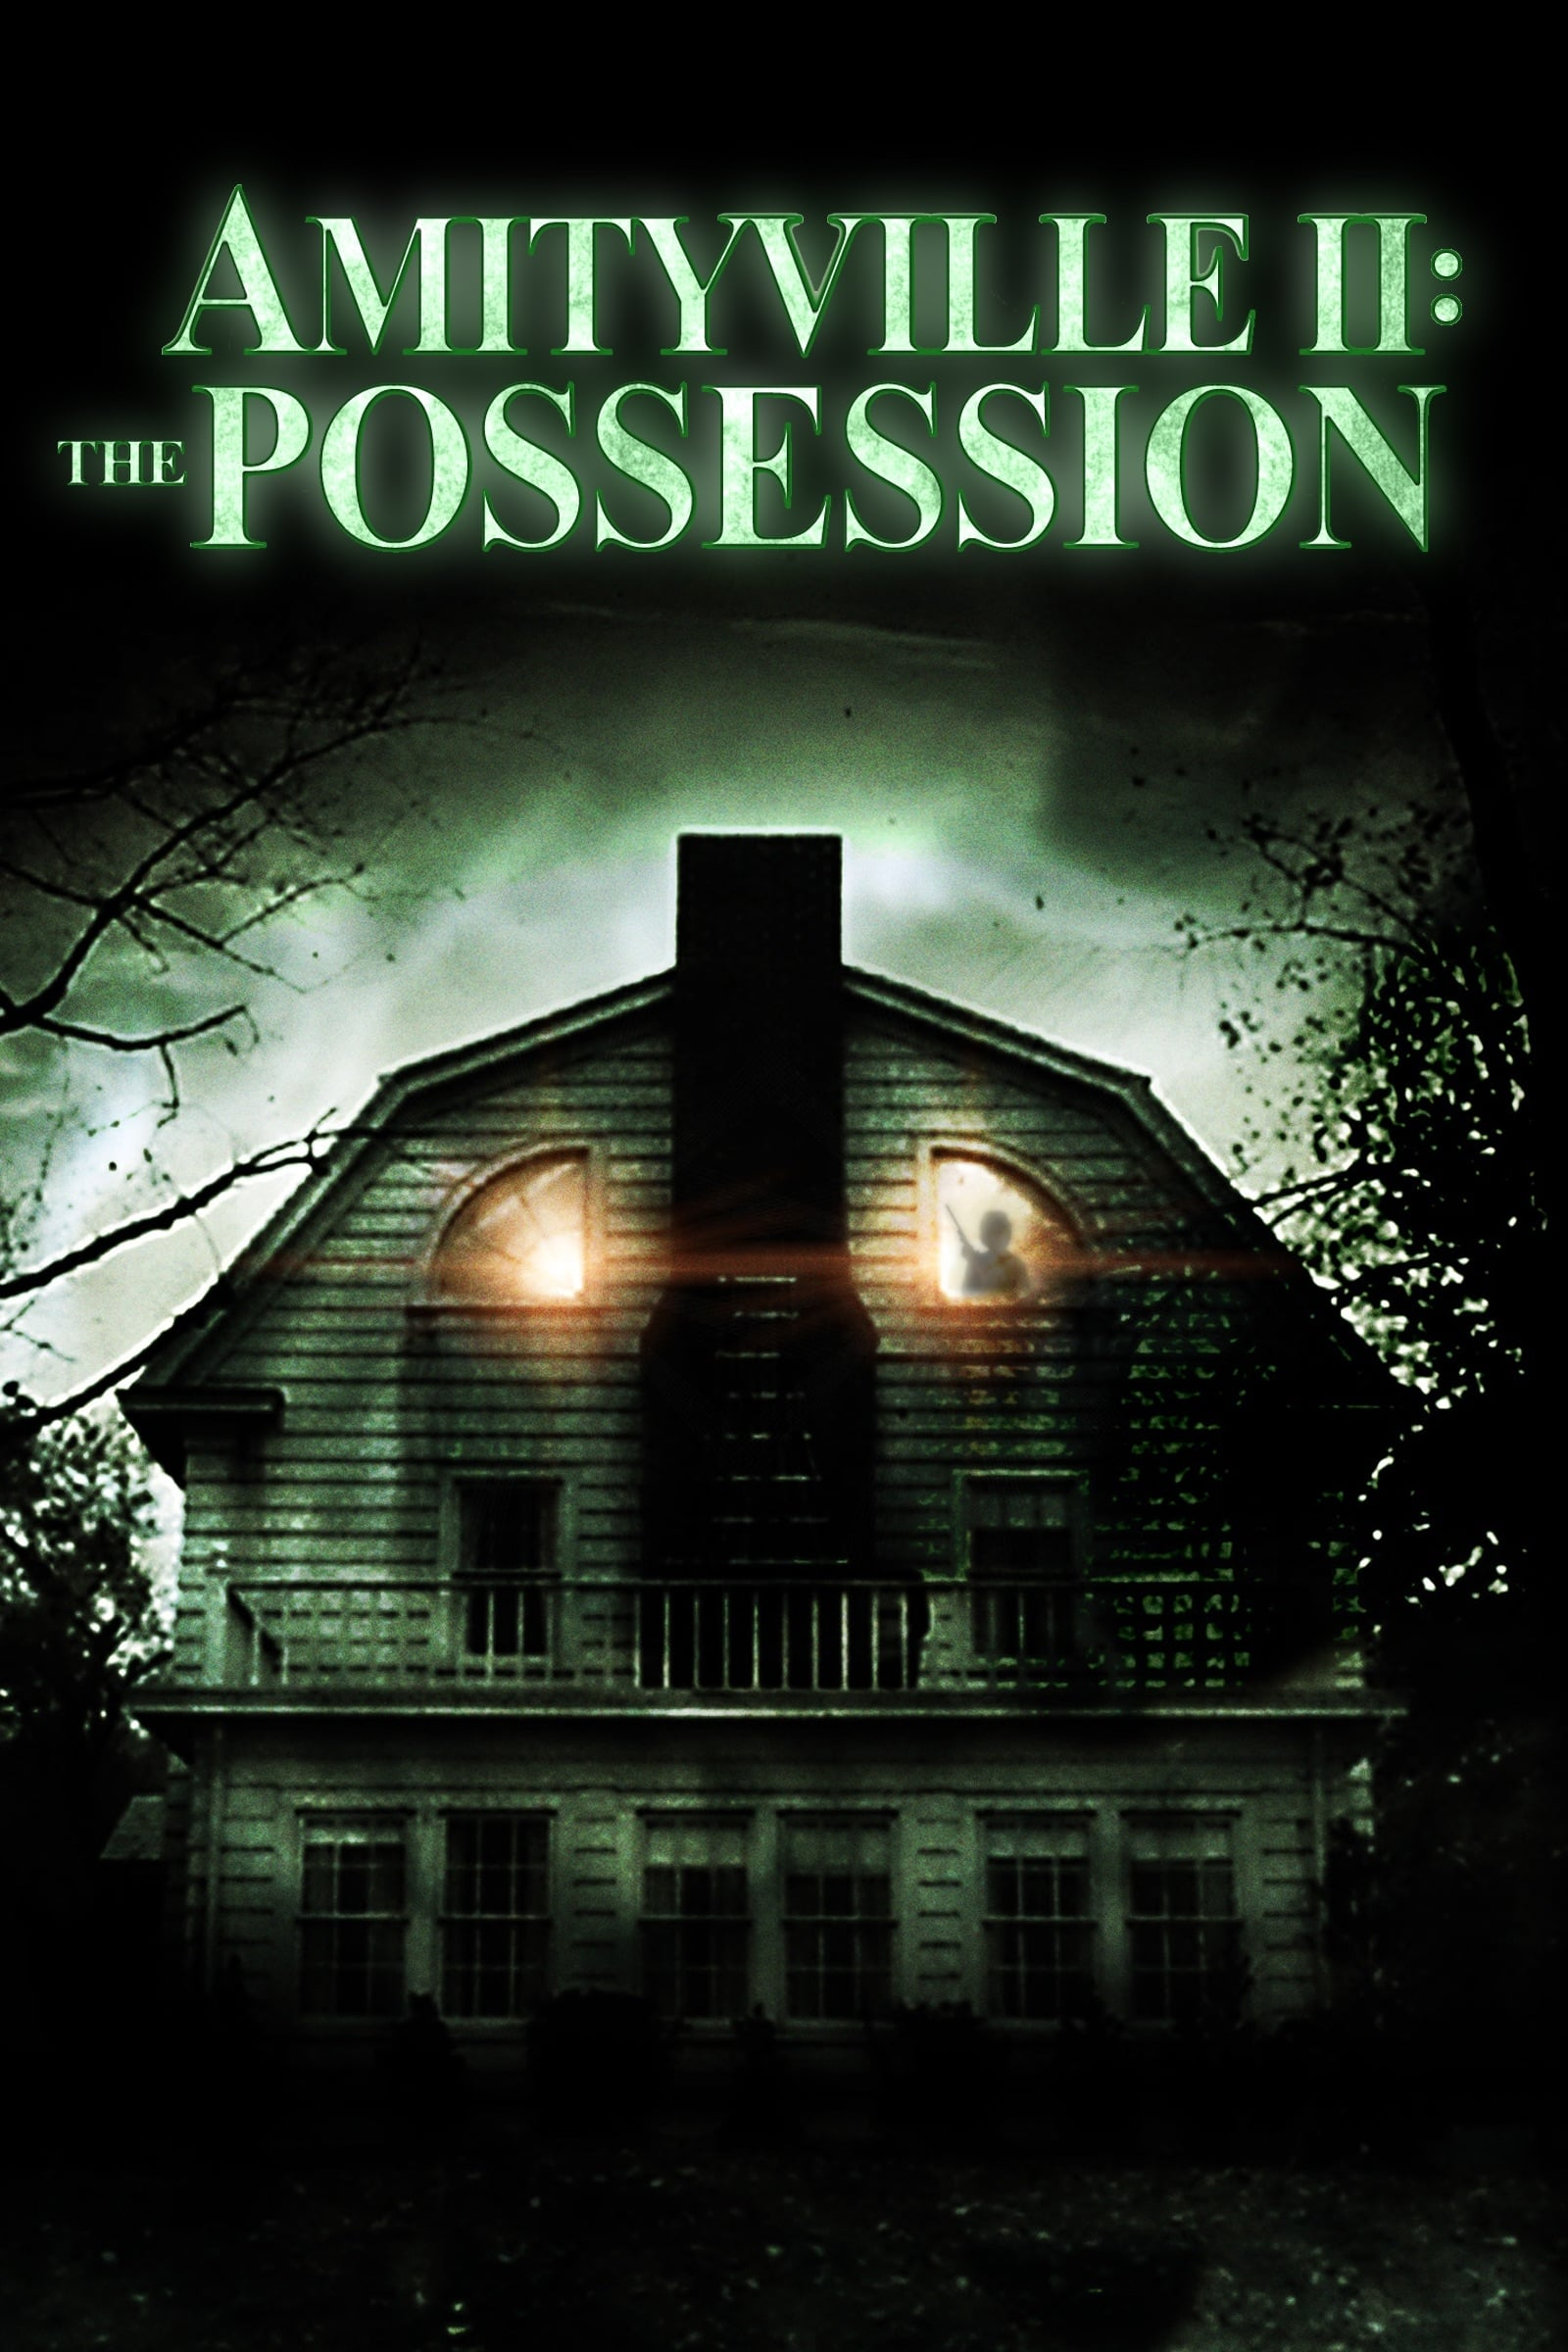 Another Amityville Horror